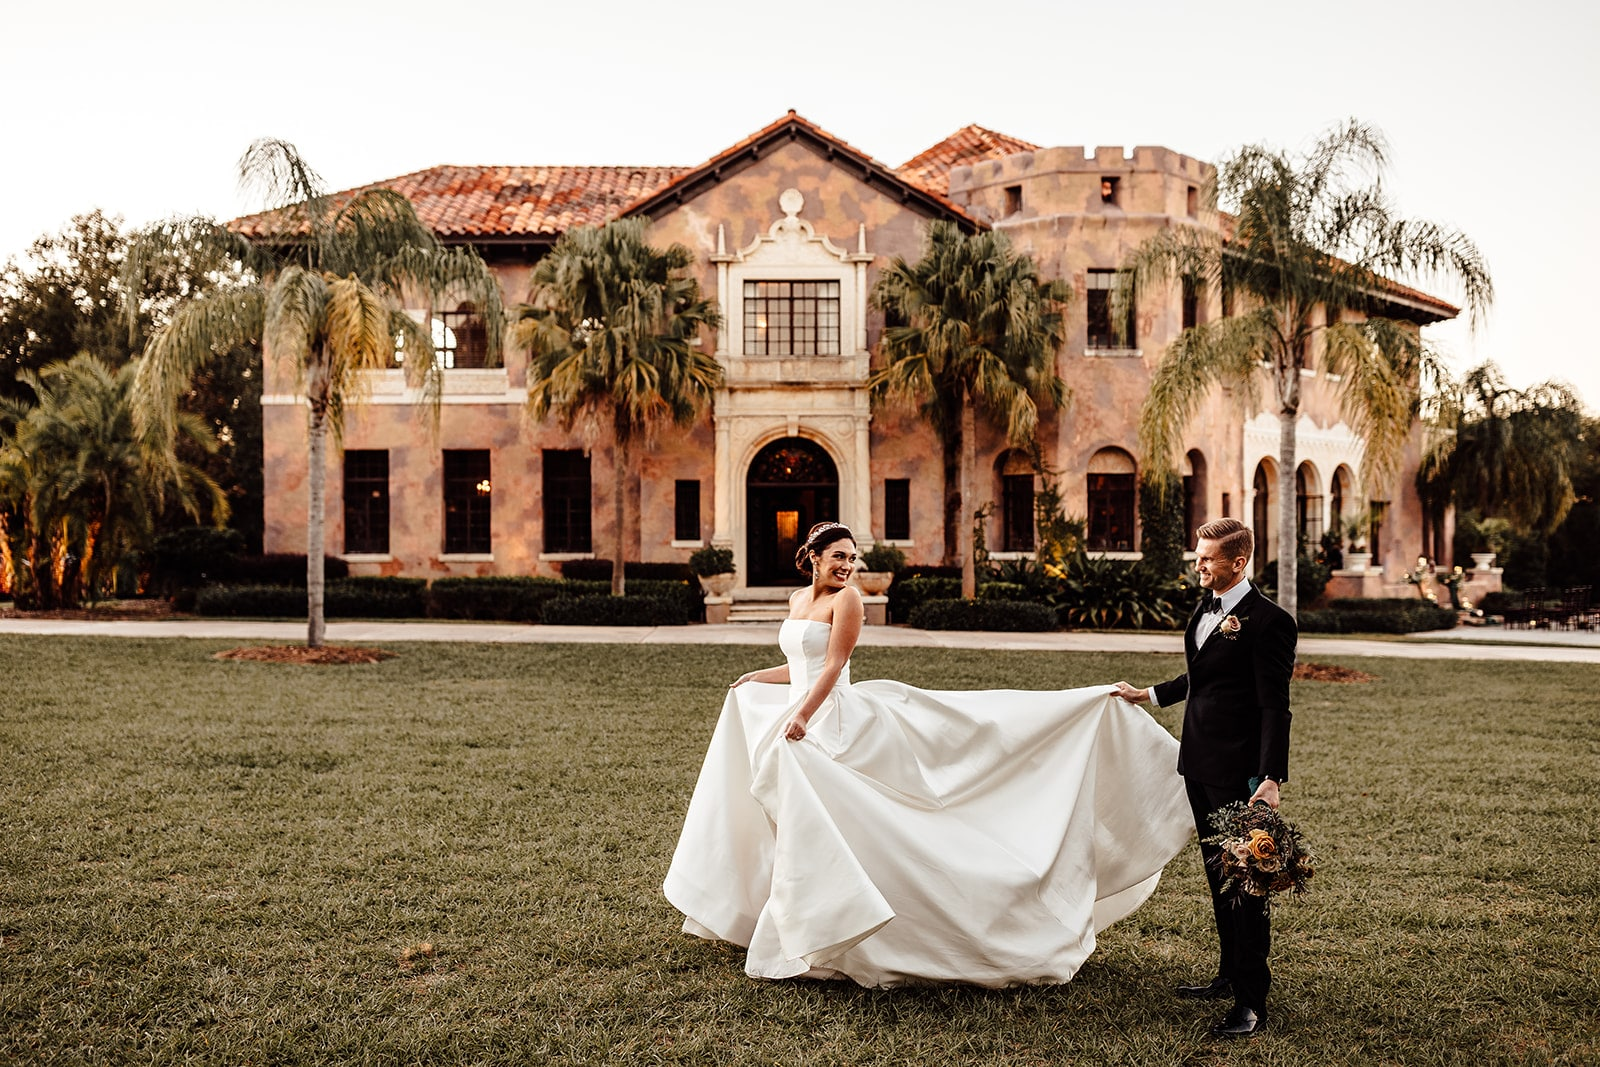 bride walks in grass looking back at groom holding her bridal gown up and bouquet in the other hand with the big historic mansion in the background